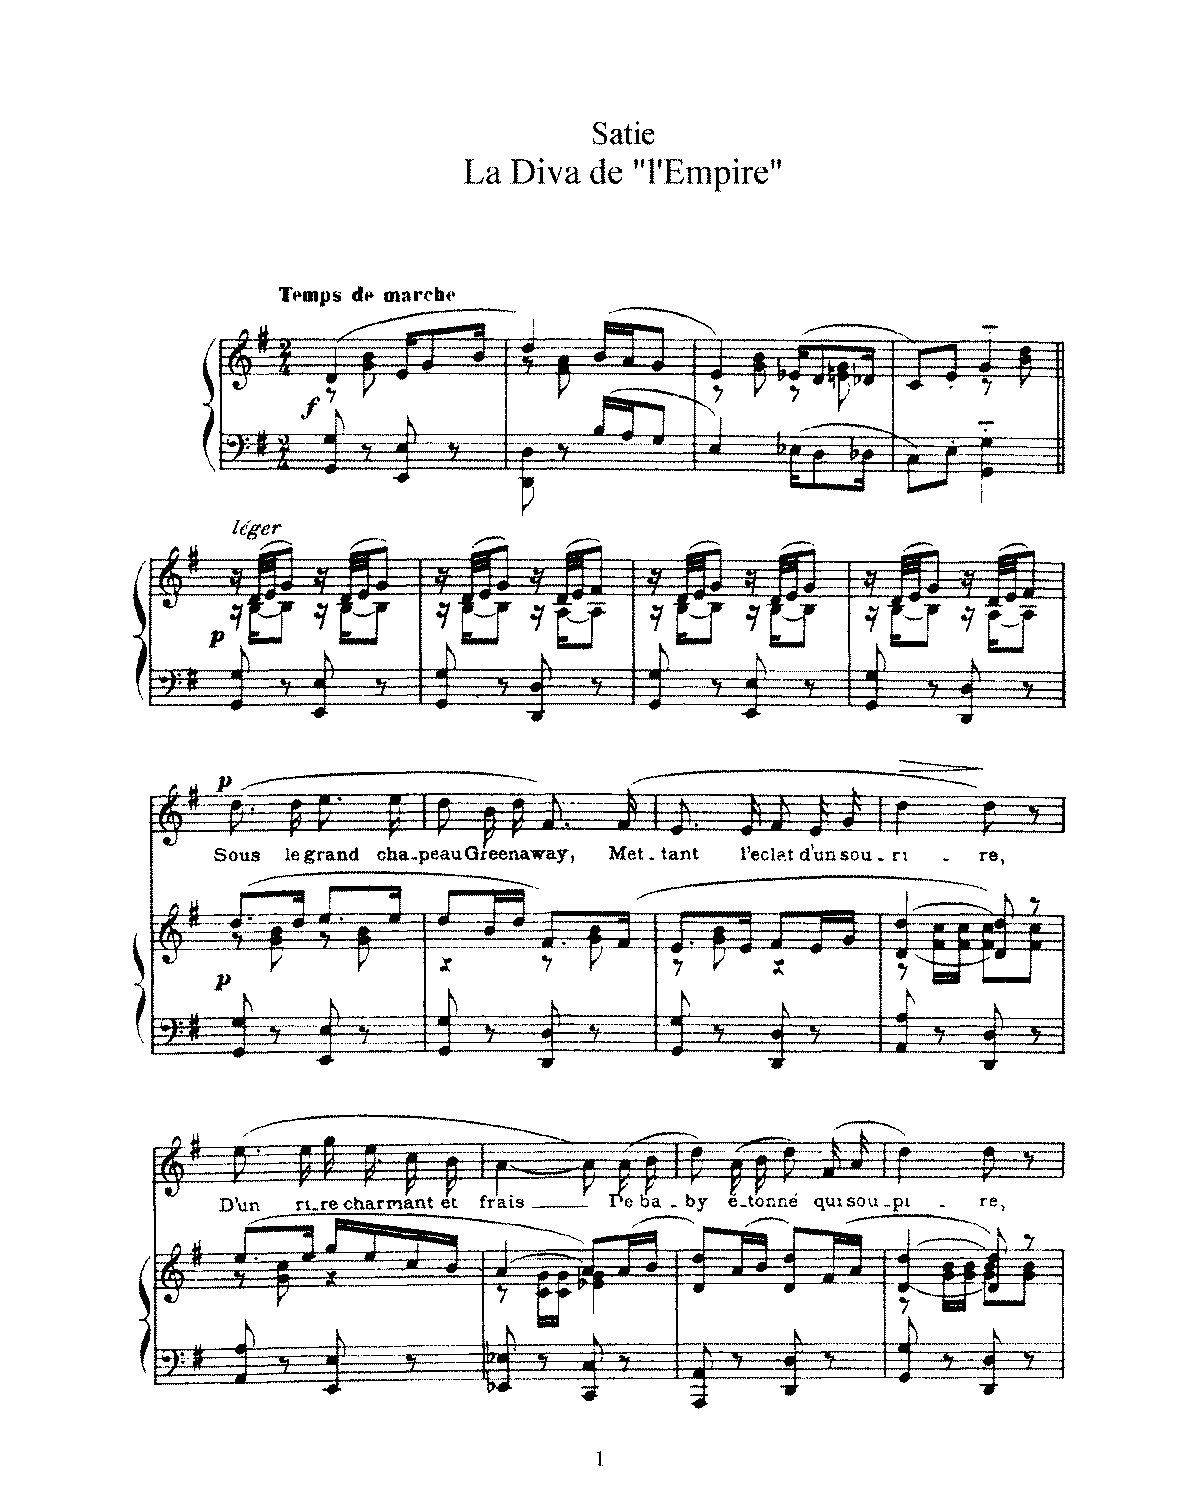 Satie - La Diva de l'Empire (voice and piano).pdf